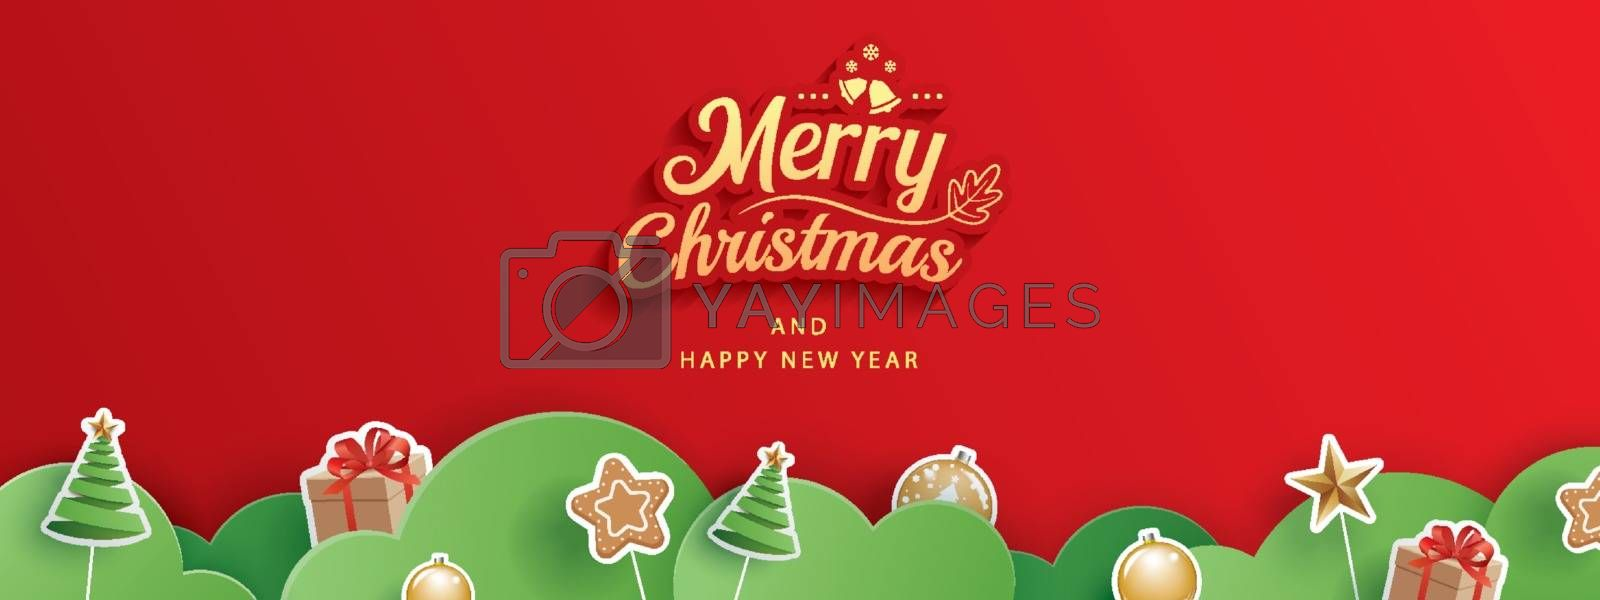 Merry christmas and happy new year red greeting card in paper art banner template. Use for header website, cover, flyer.